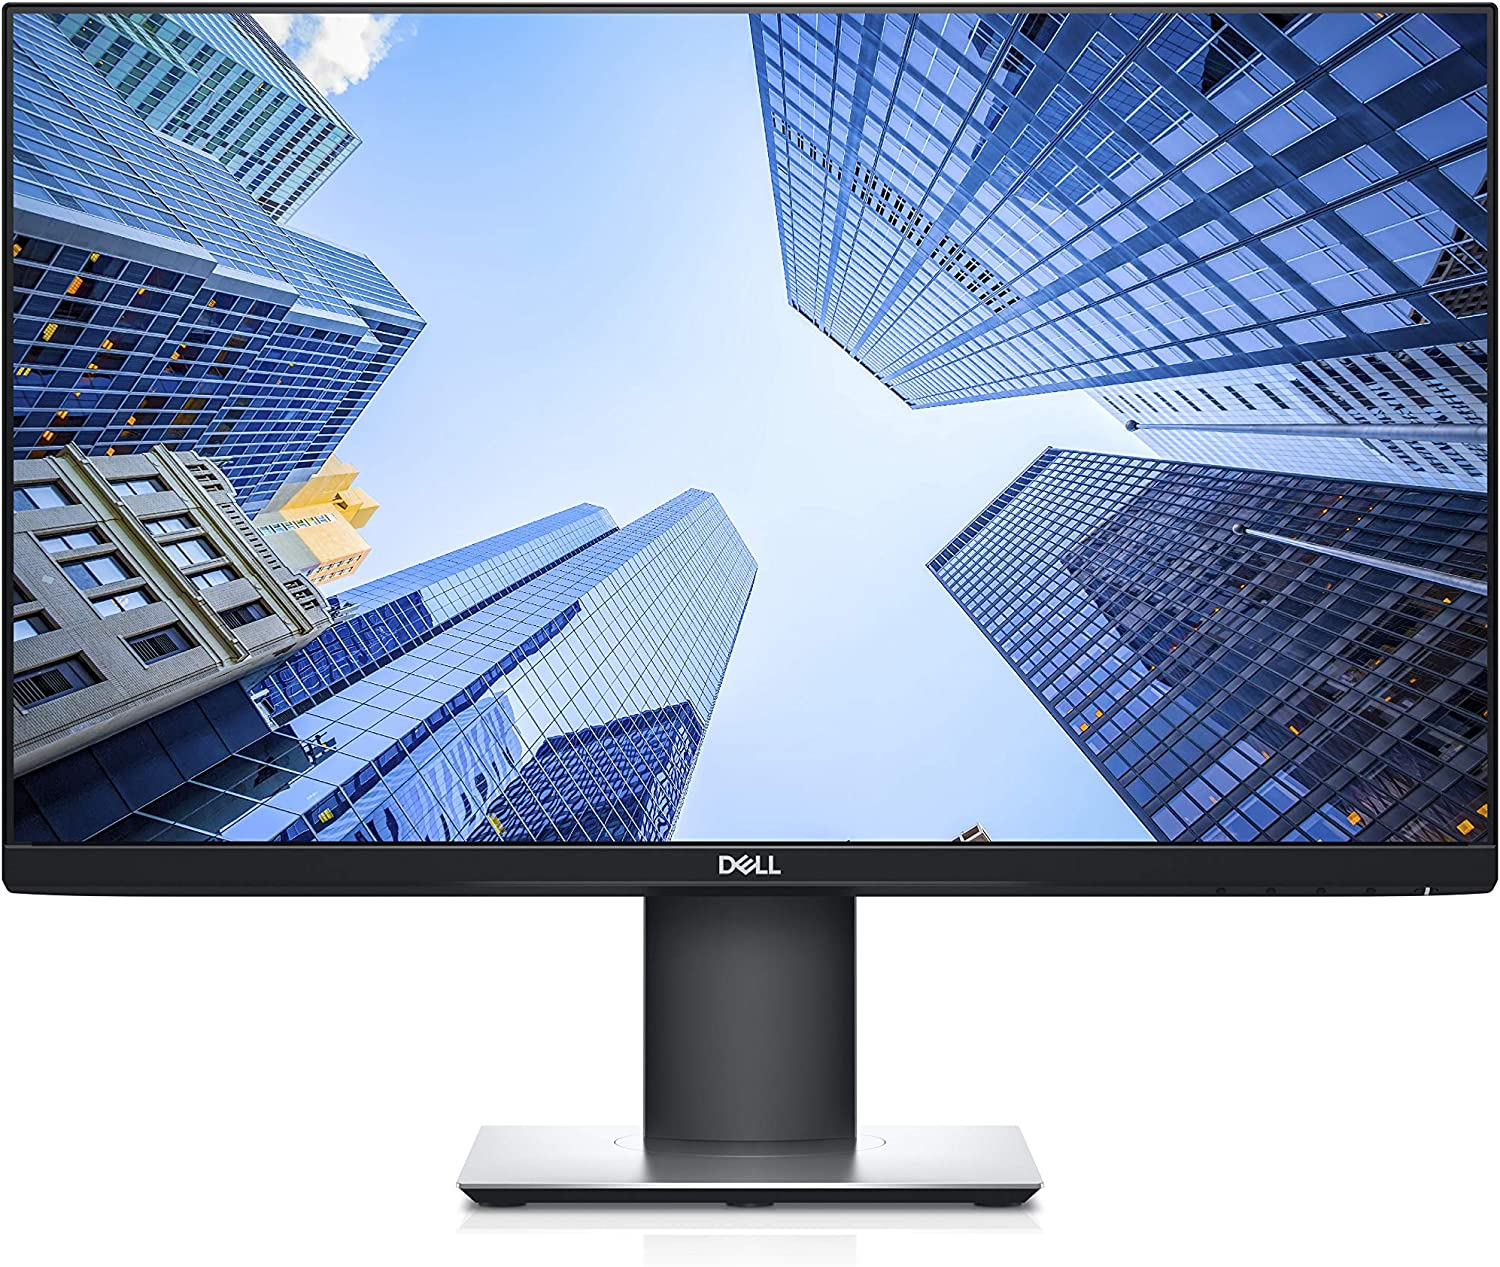 Dell P2419H - best dual monitor setup